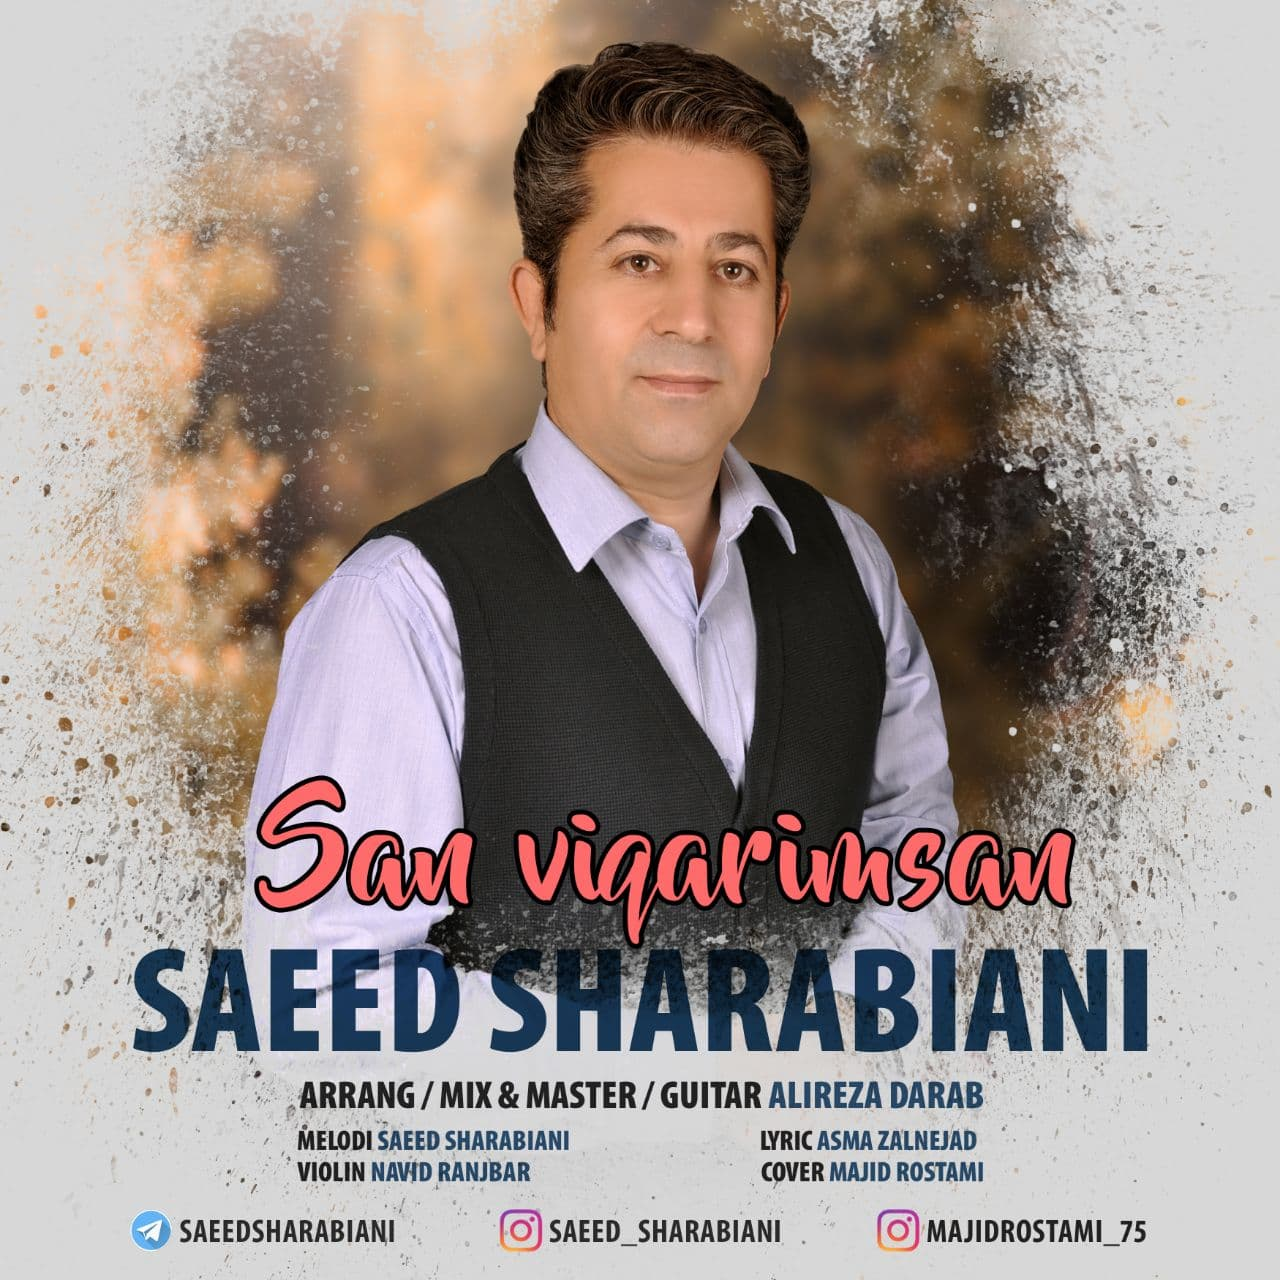 https://s17.picofile.com/file/8428735084/17Saeed_Sharabiani_San_Viqarimsan.jpg